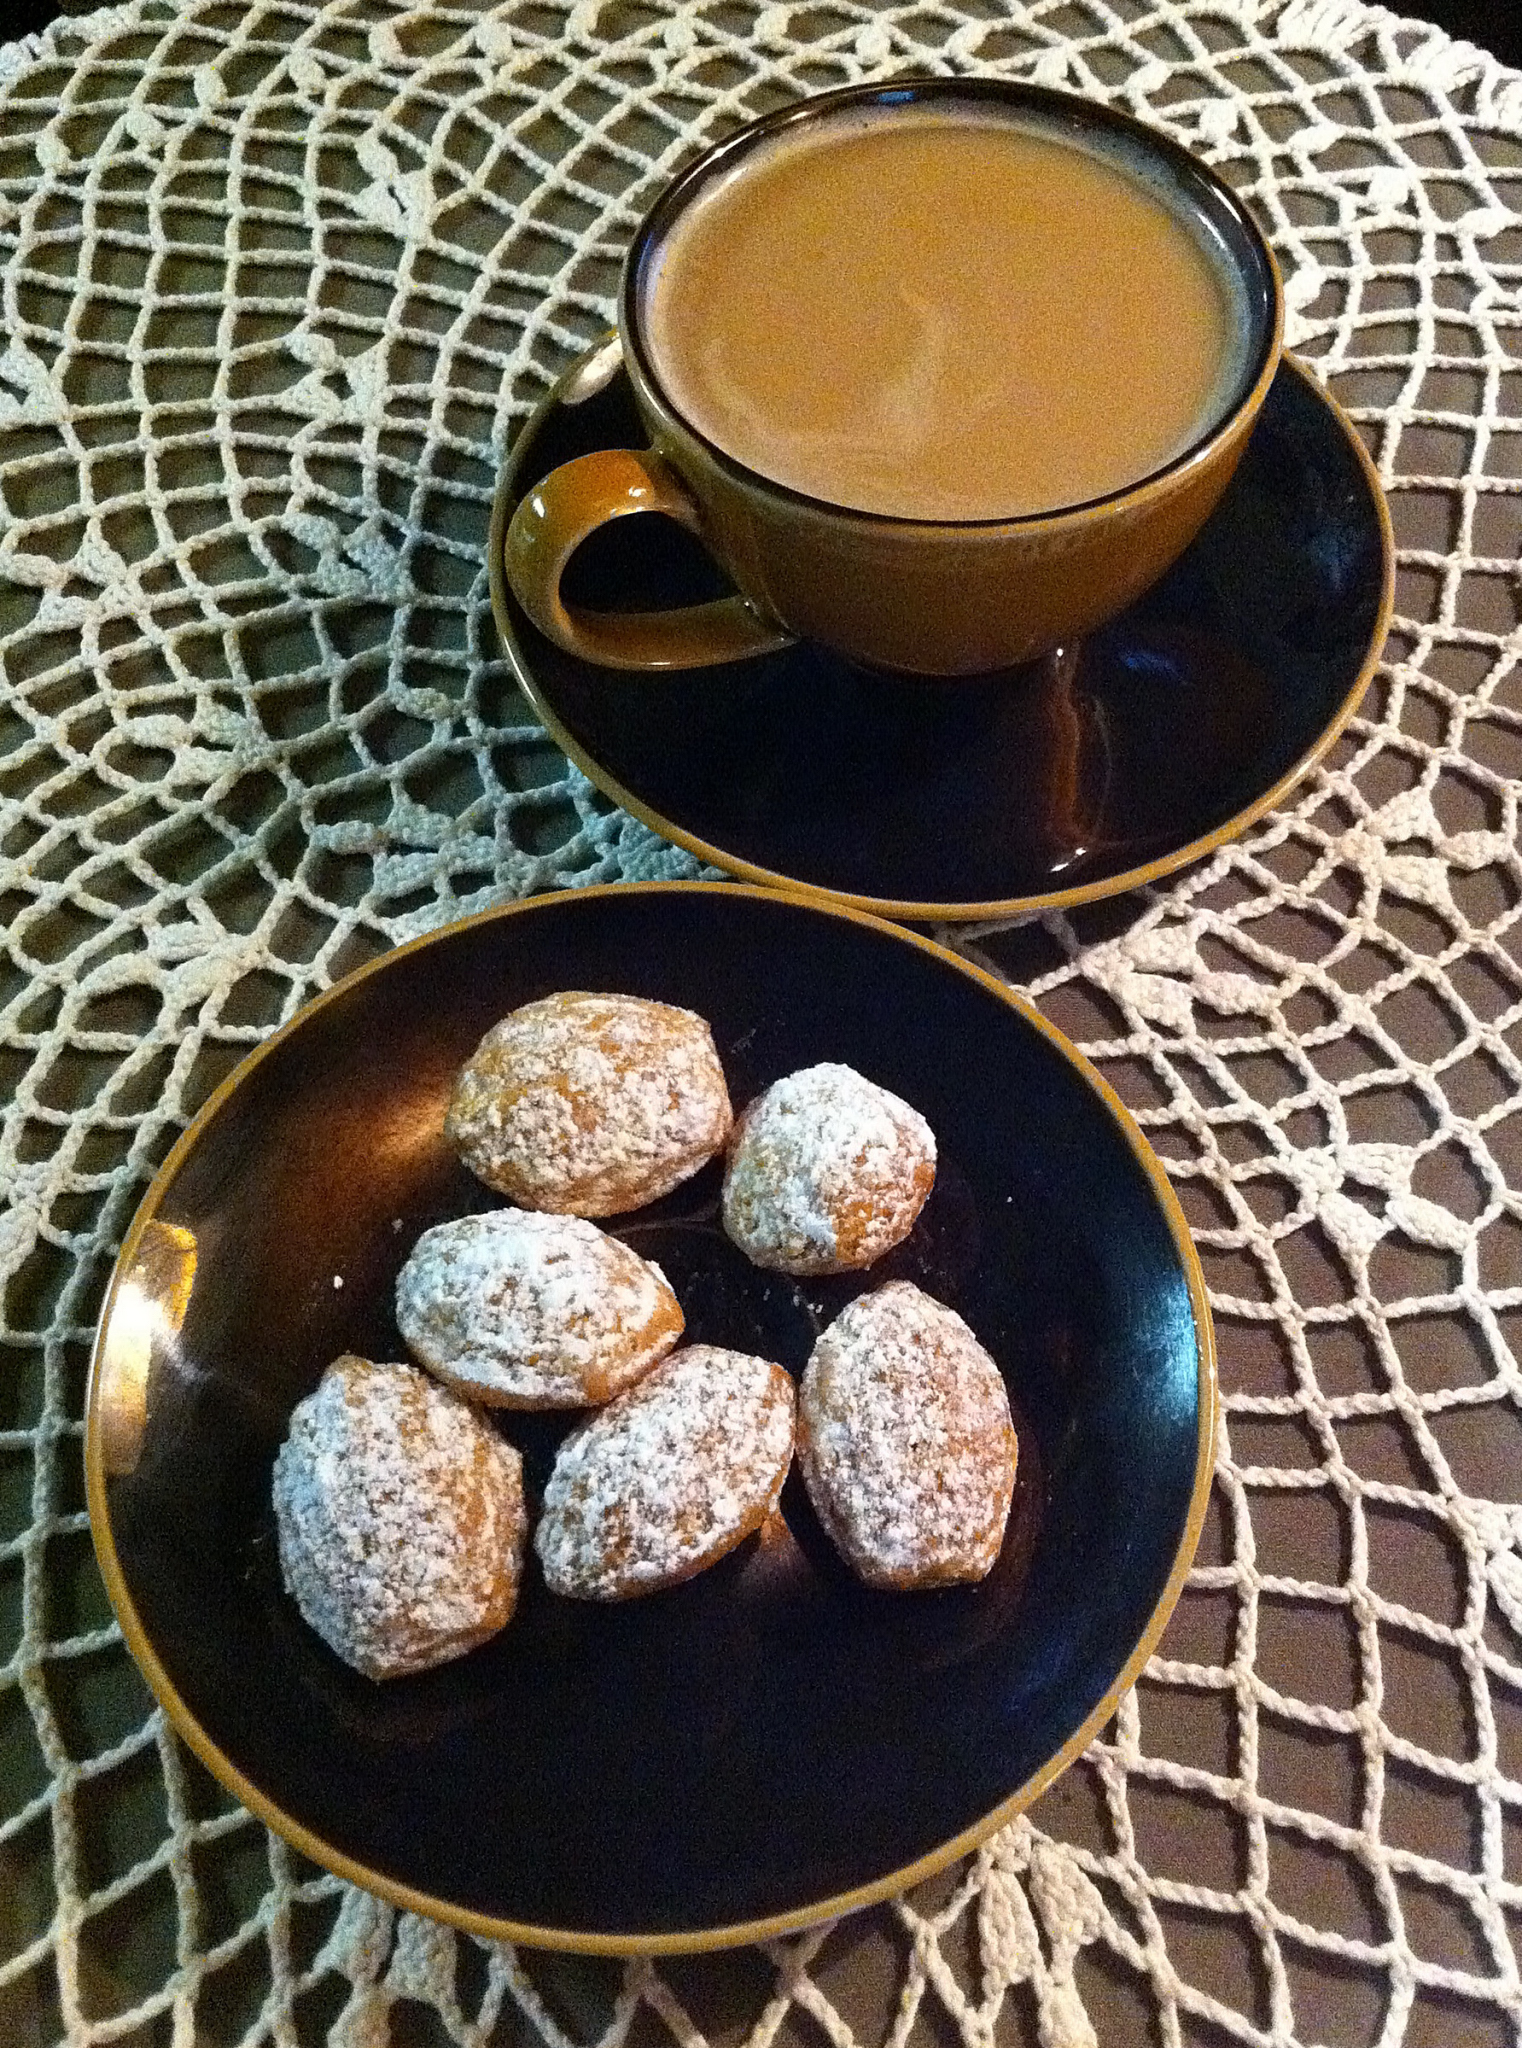 French Madeleines - Miniature and Traditional